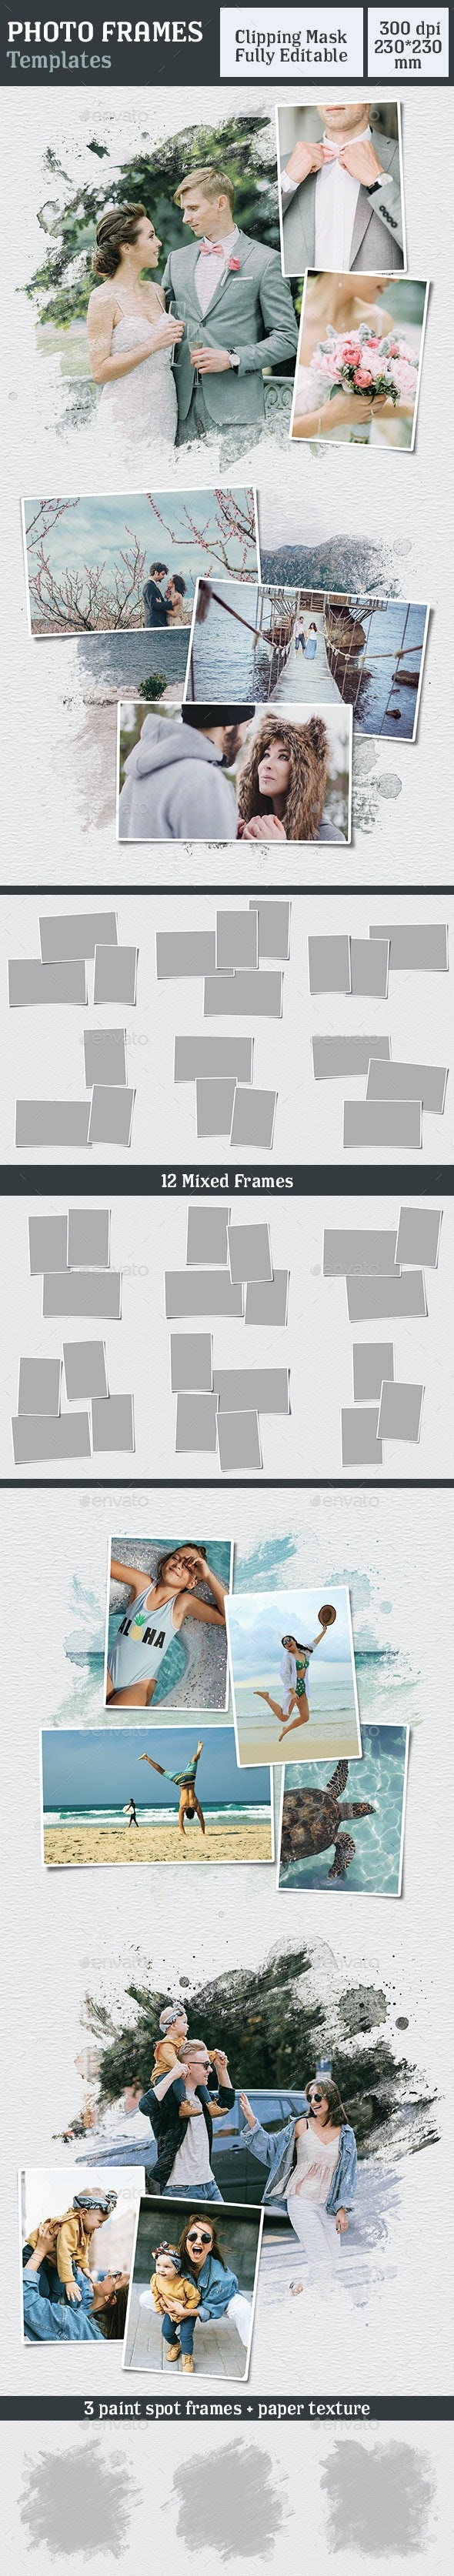 Photo Frames Template 28302073